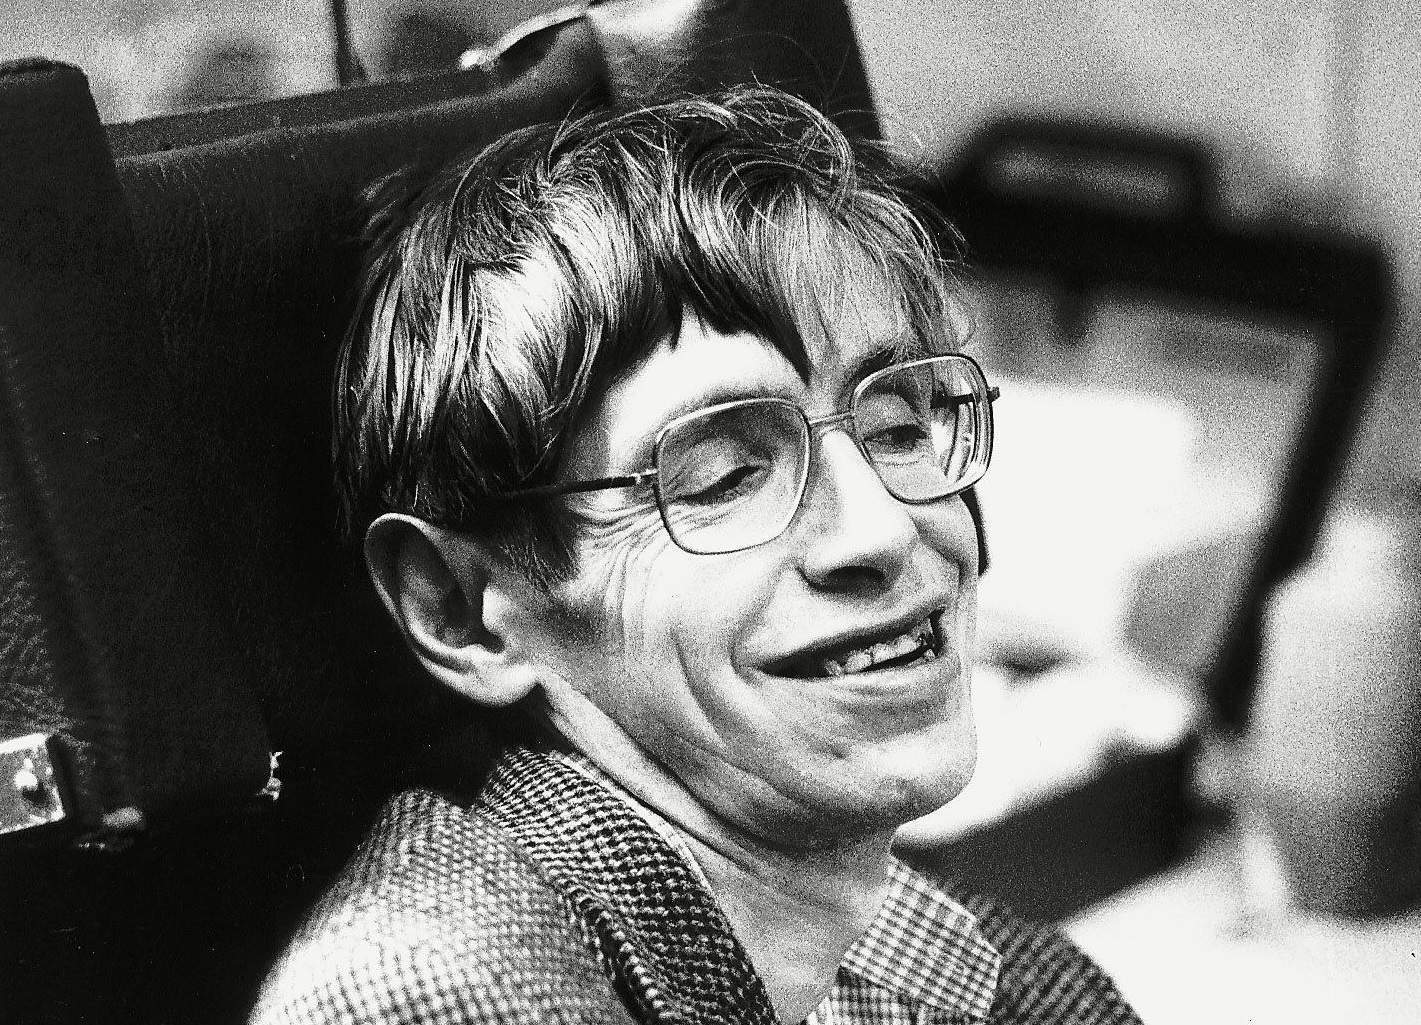 Stephen Hawking's life is a triumph of intellect over adversity